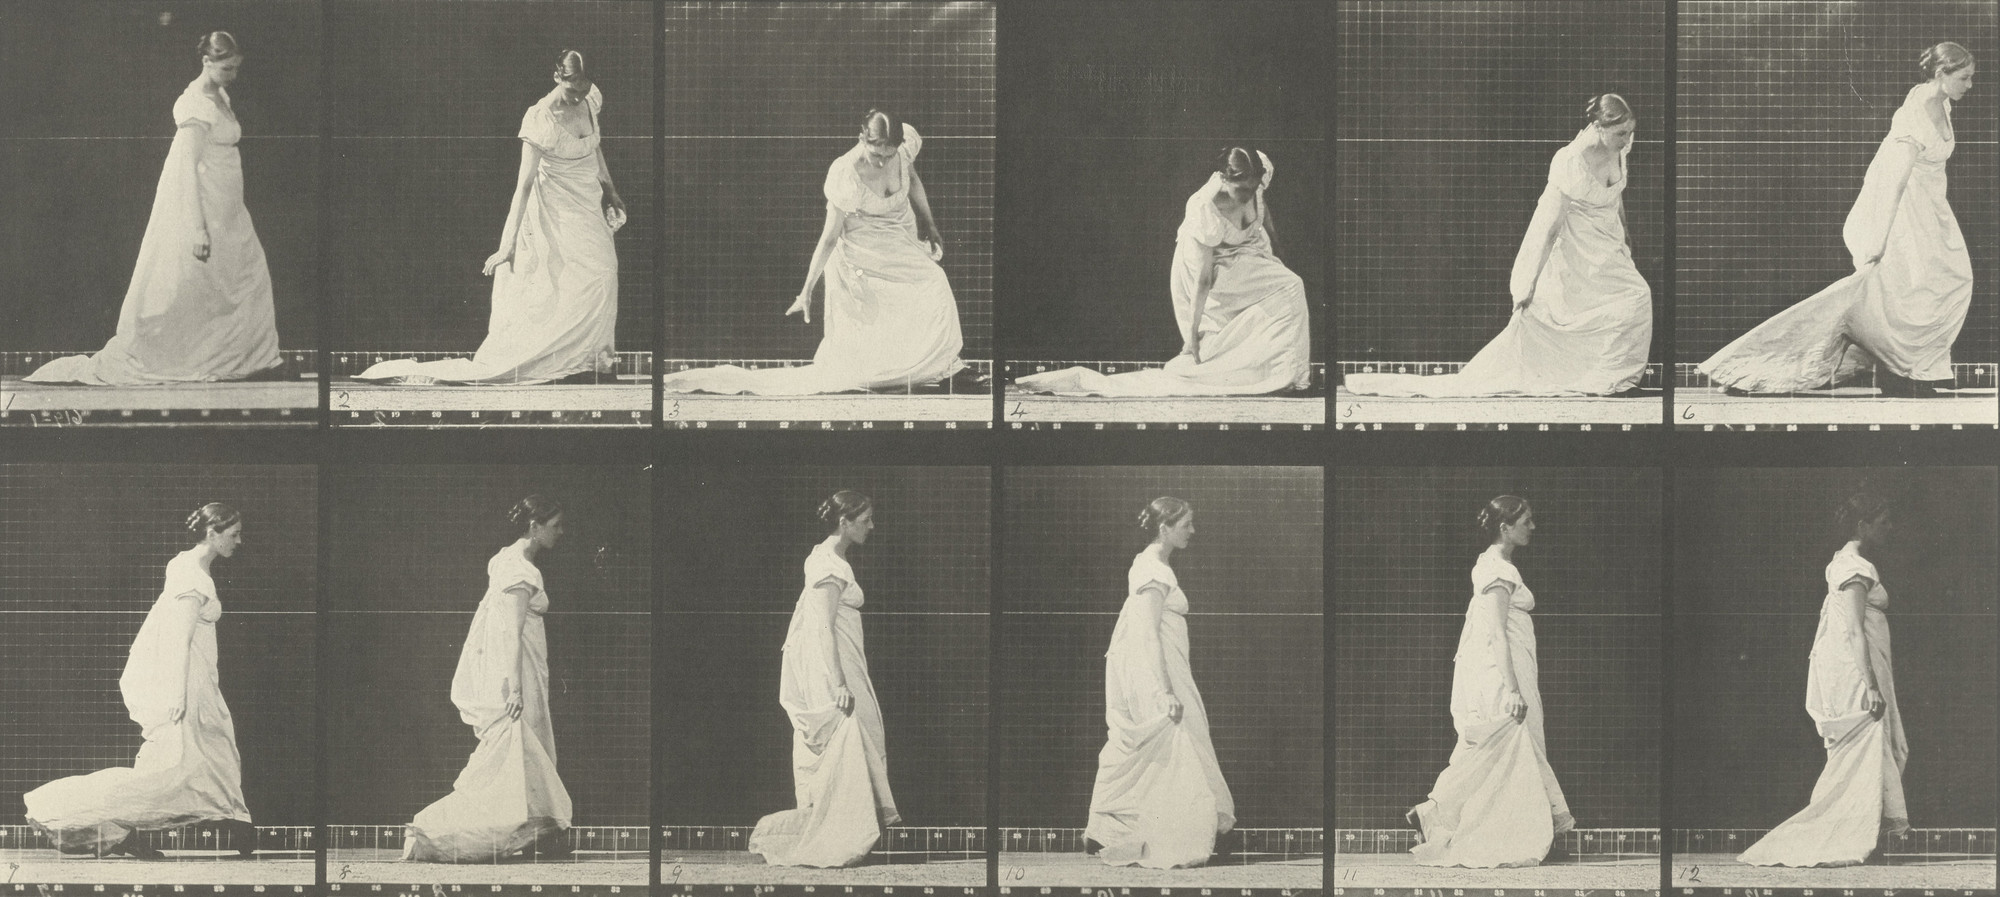 Eadweard J. Muybridge. Woman Stooping and Lifting Train: Plate 207 from Animal Locomotion (1887). 1884-86